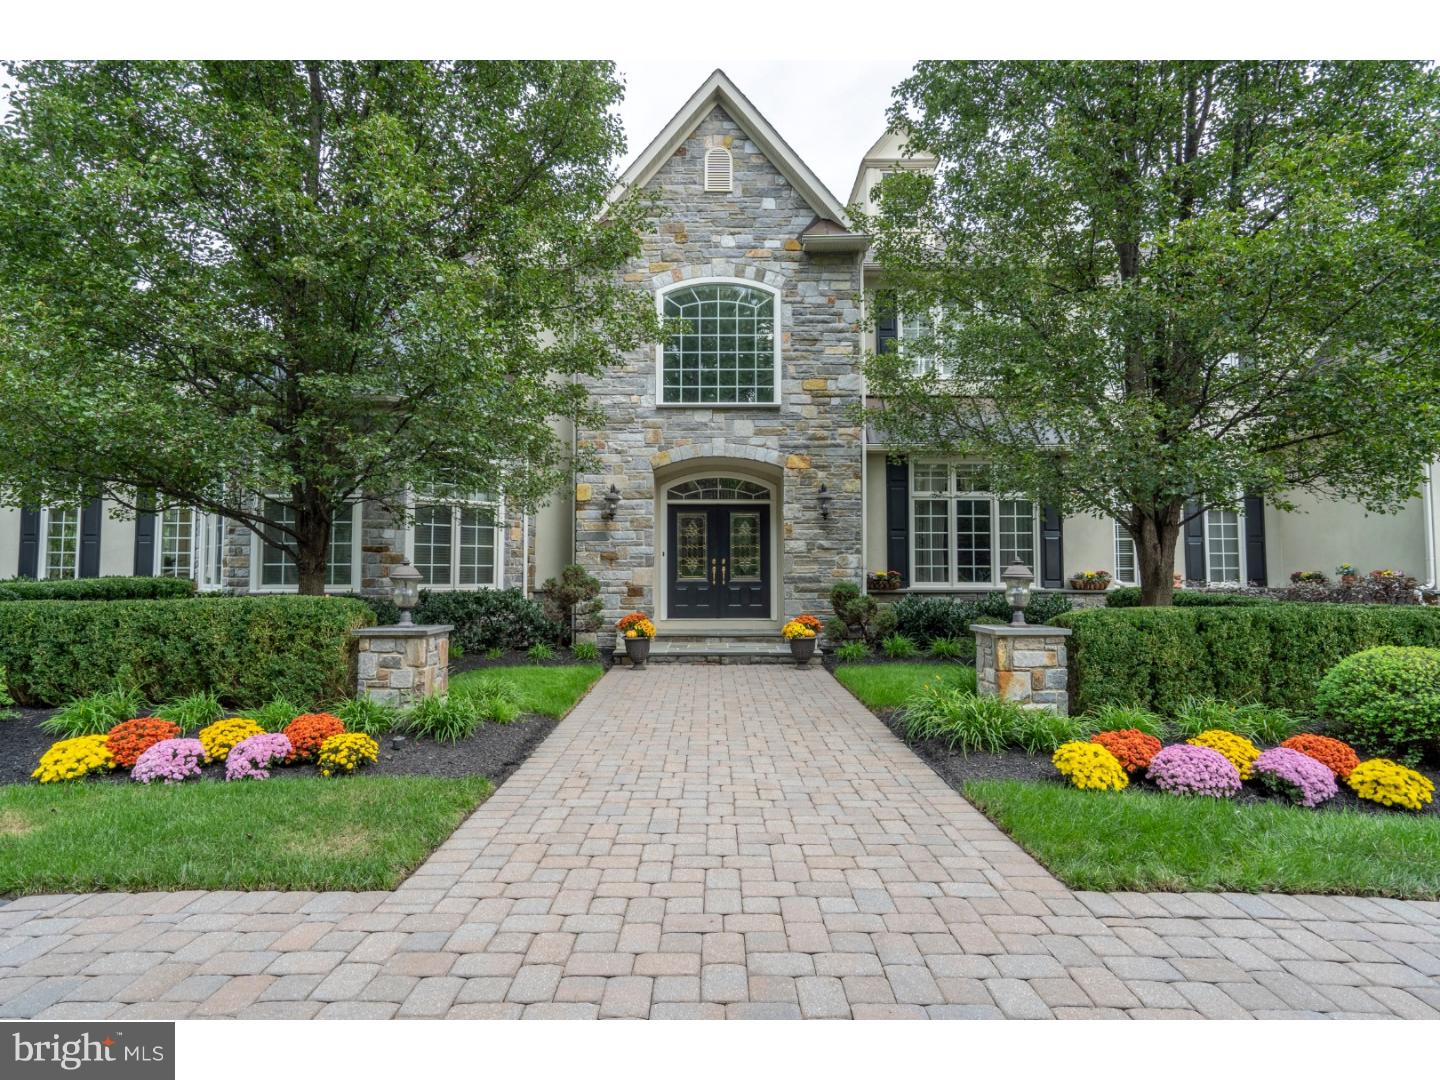 3 WEDGEWOOD DRIVE, BLUE BELL, PA 19422